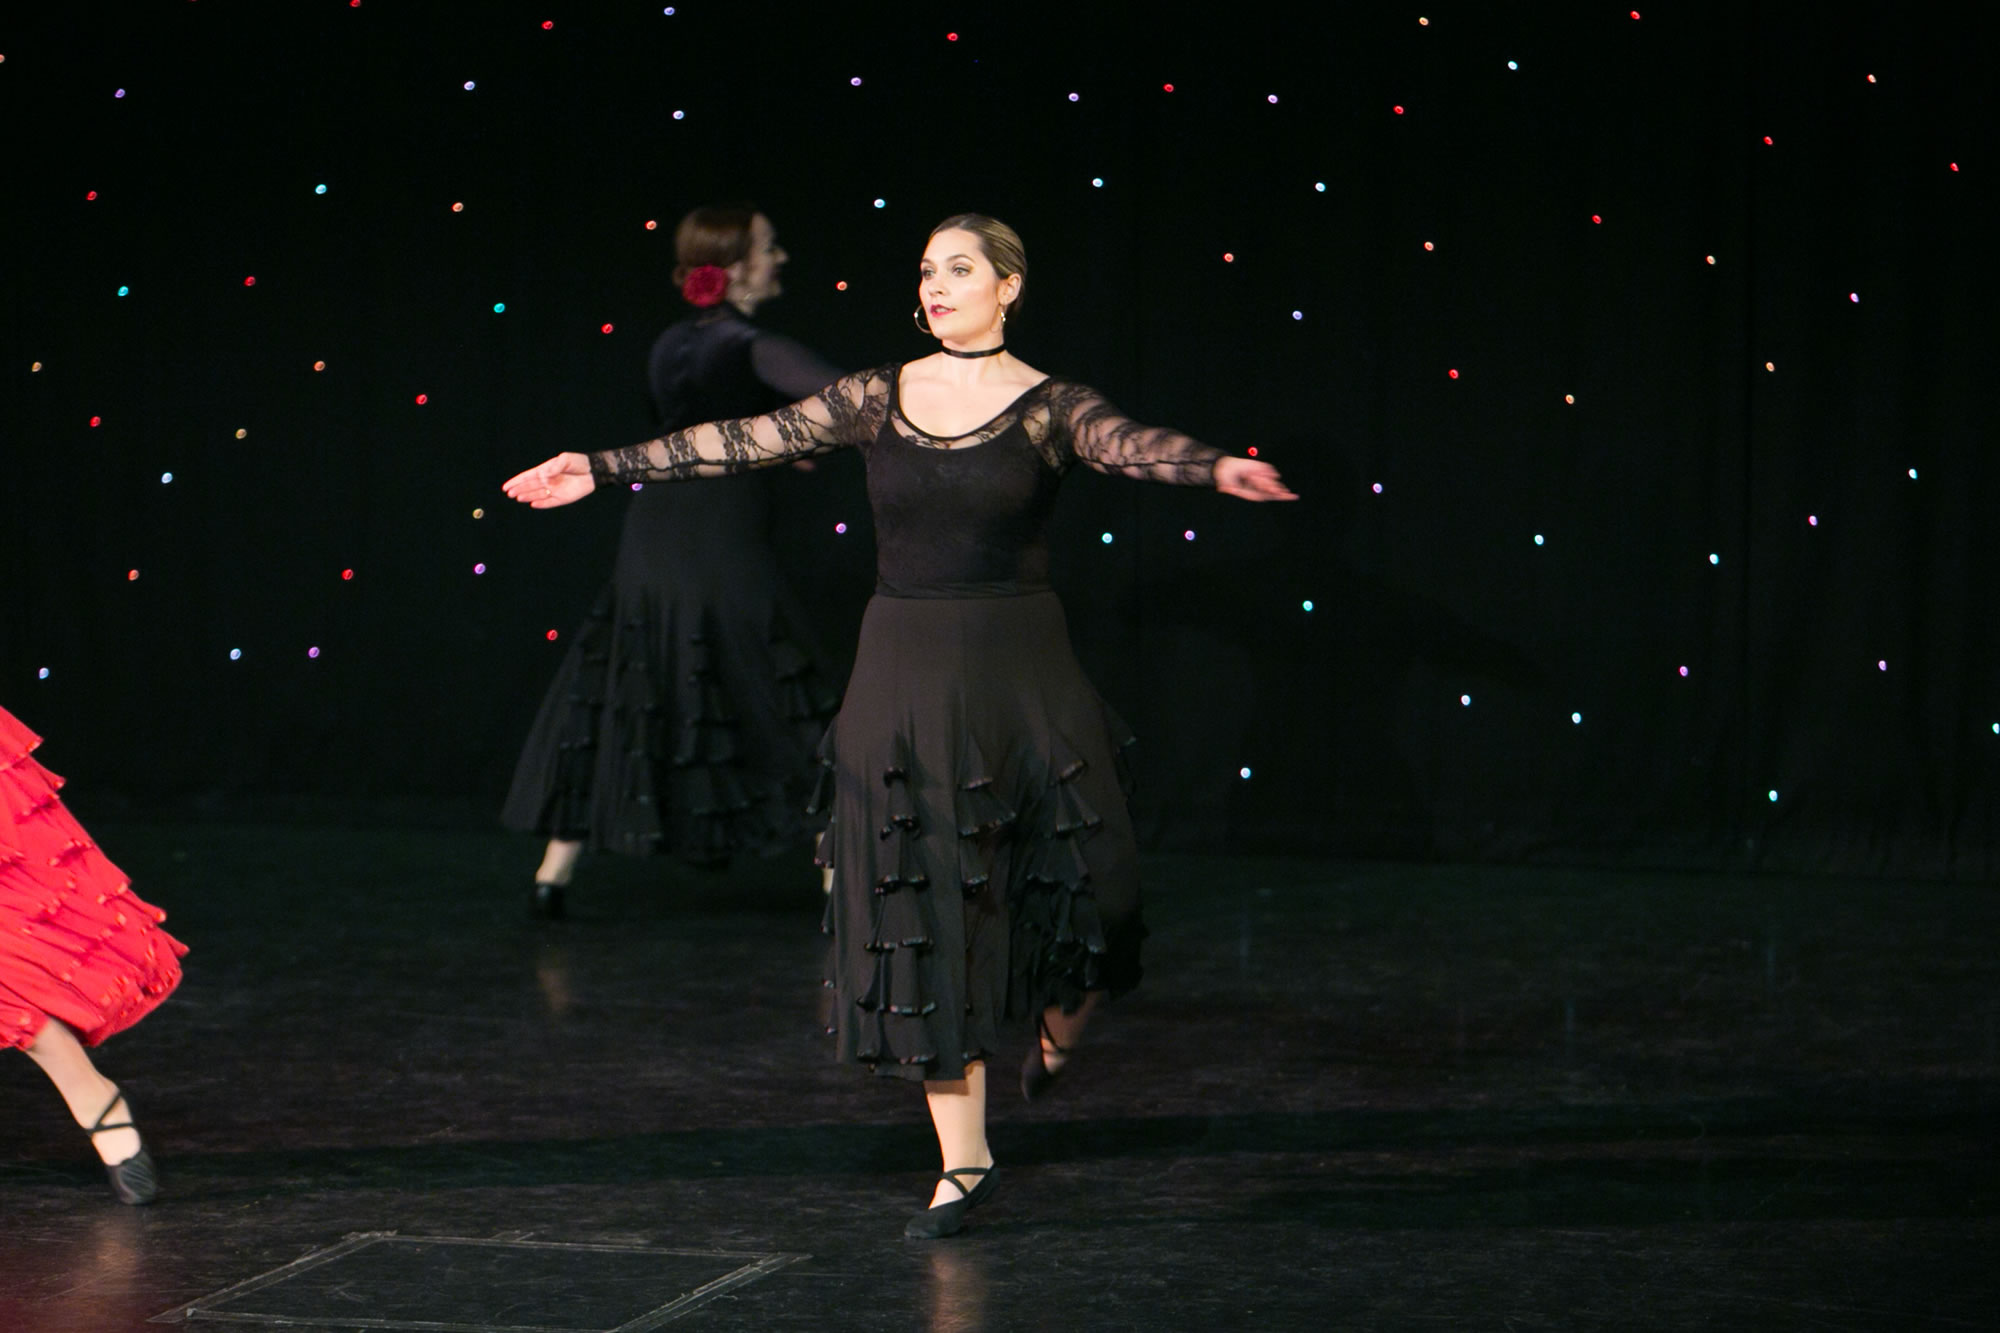 Hitchin_School_of_Dance_Show_2019-SM1_1996.jpg